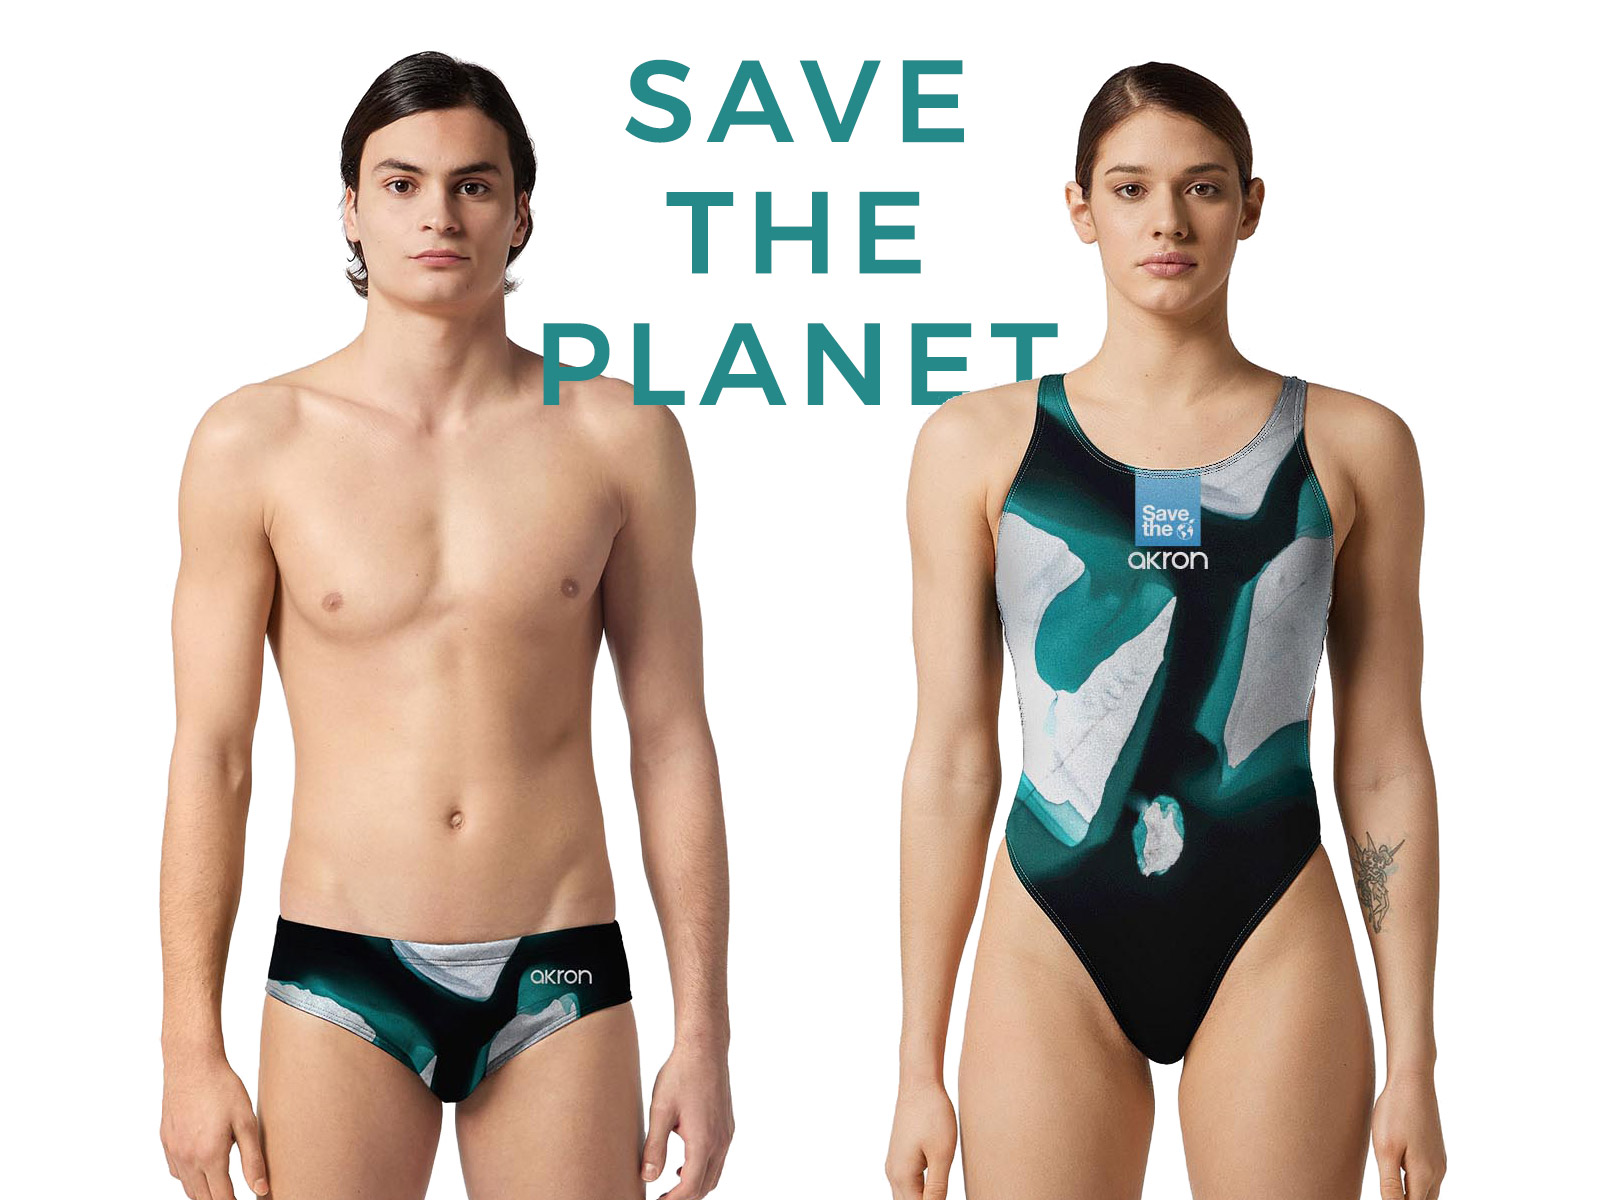 Akron save the Planet